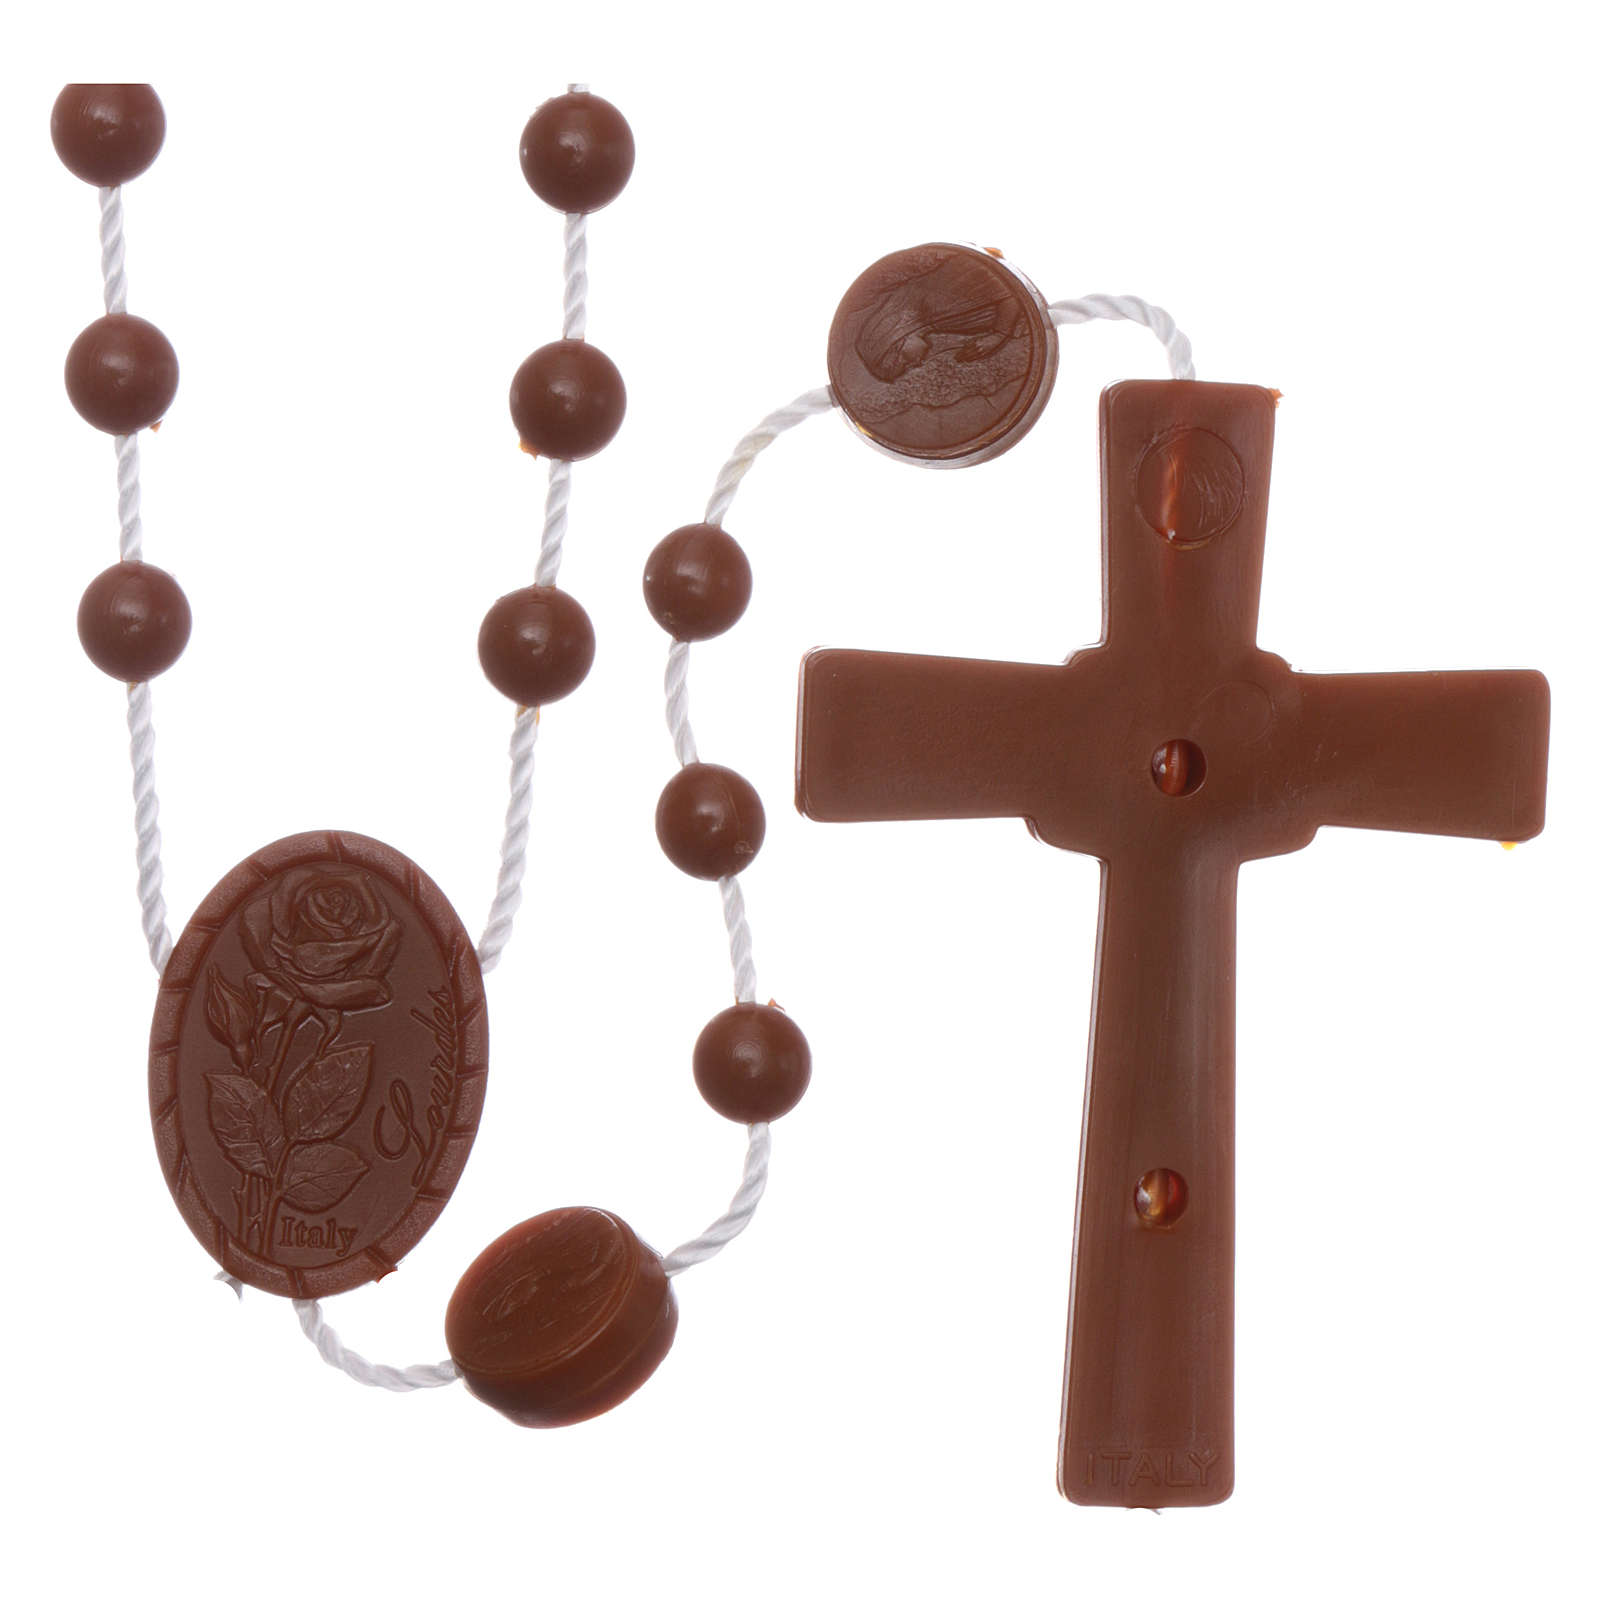 Nylon Our Lady of Lourdes rosary in brown color 4